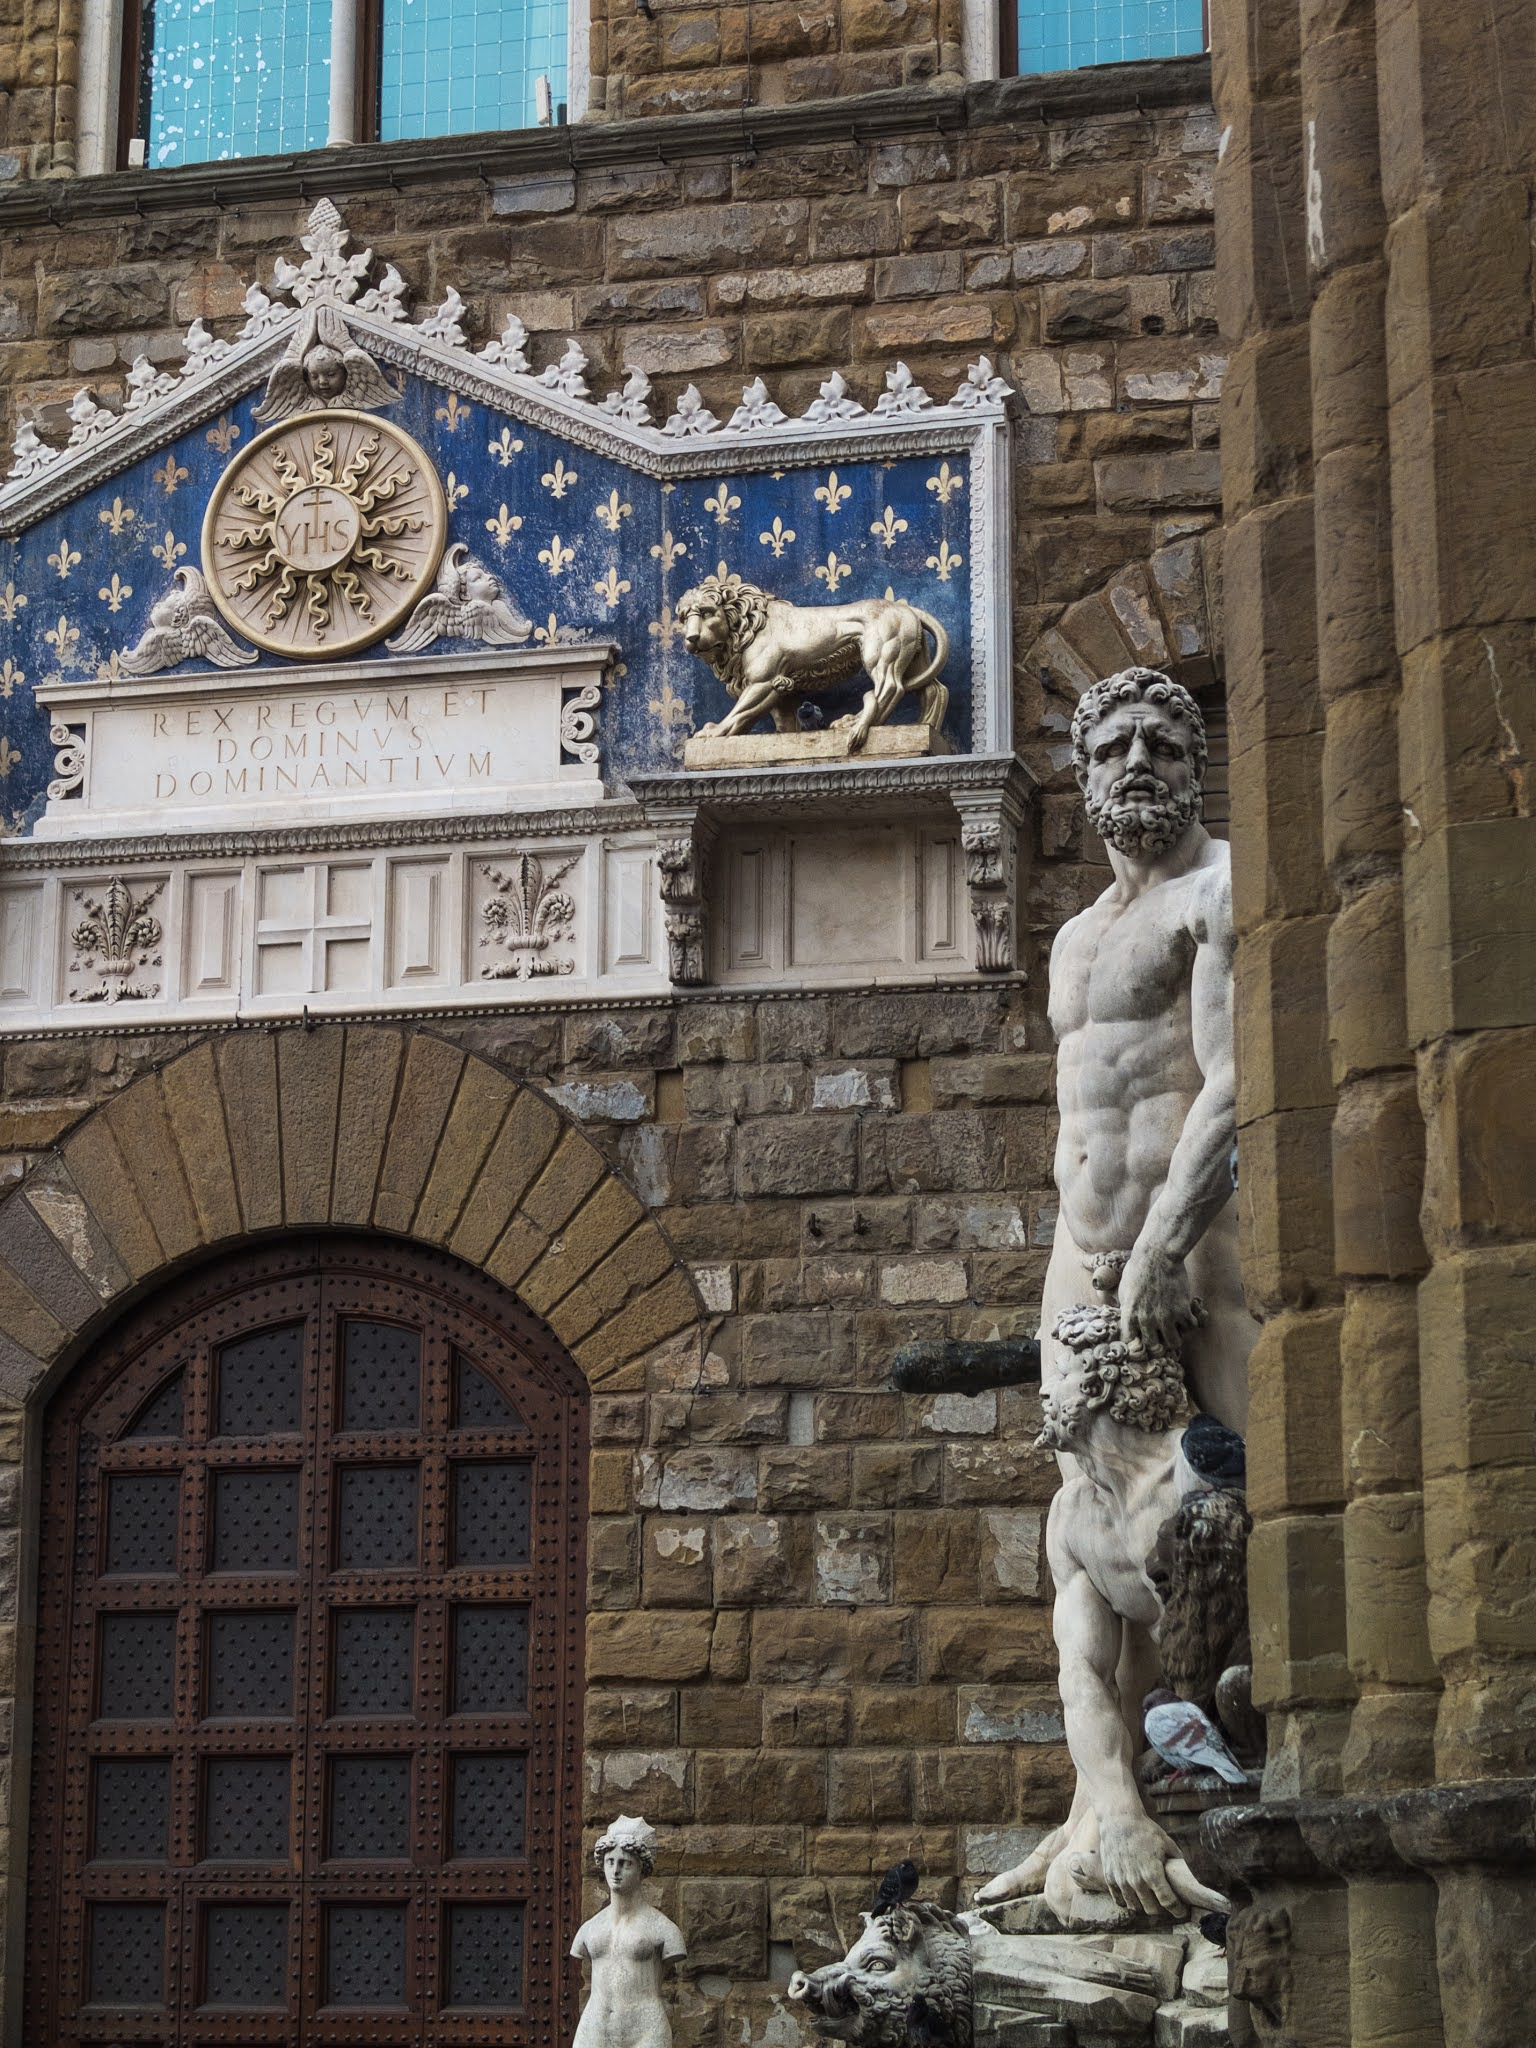 Sculpture of Hercules and Cacus outside the entrance to the Palazzo Vecchio in Florence.